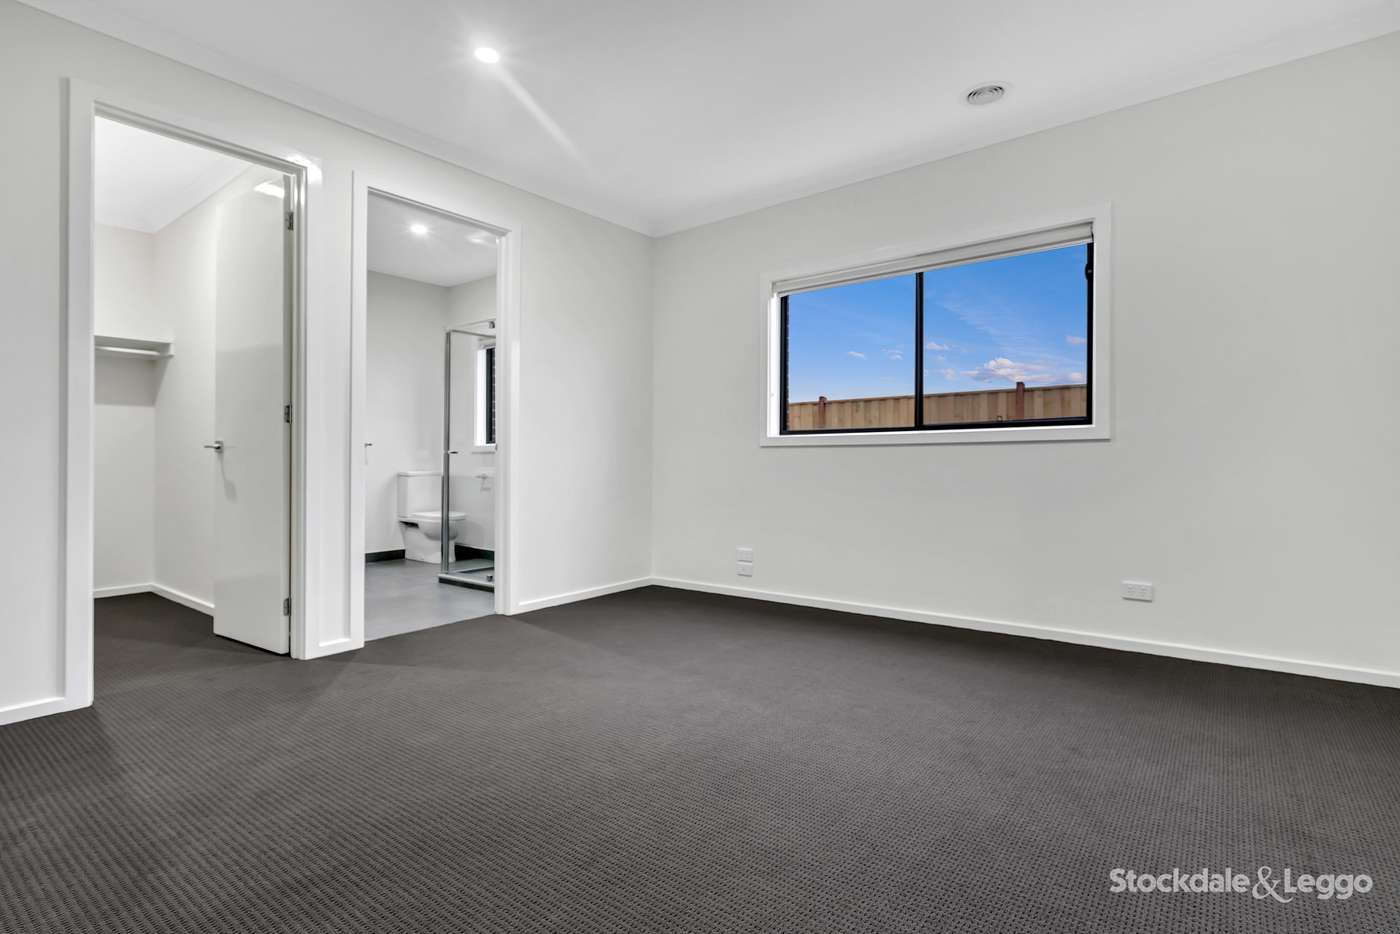 Sixth view of Homely house listing, 9 Wheatland Drive, Truganina VIC 3029